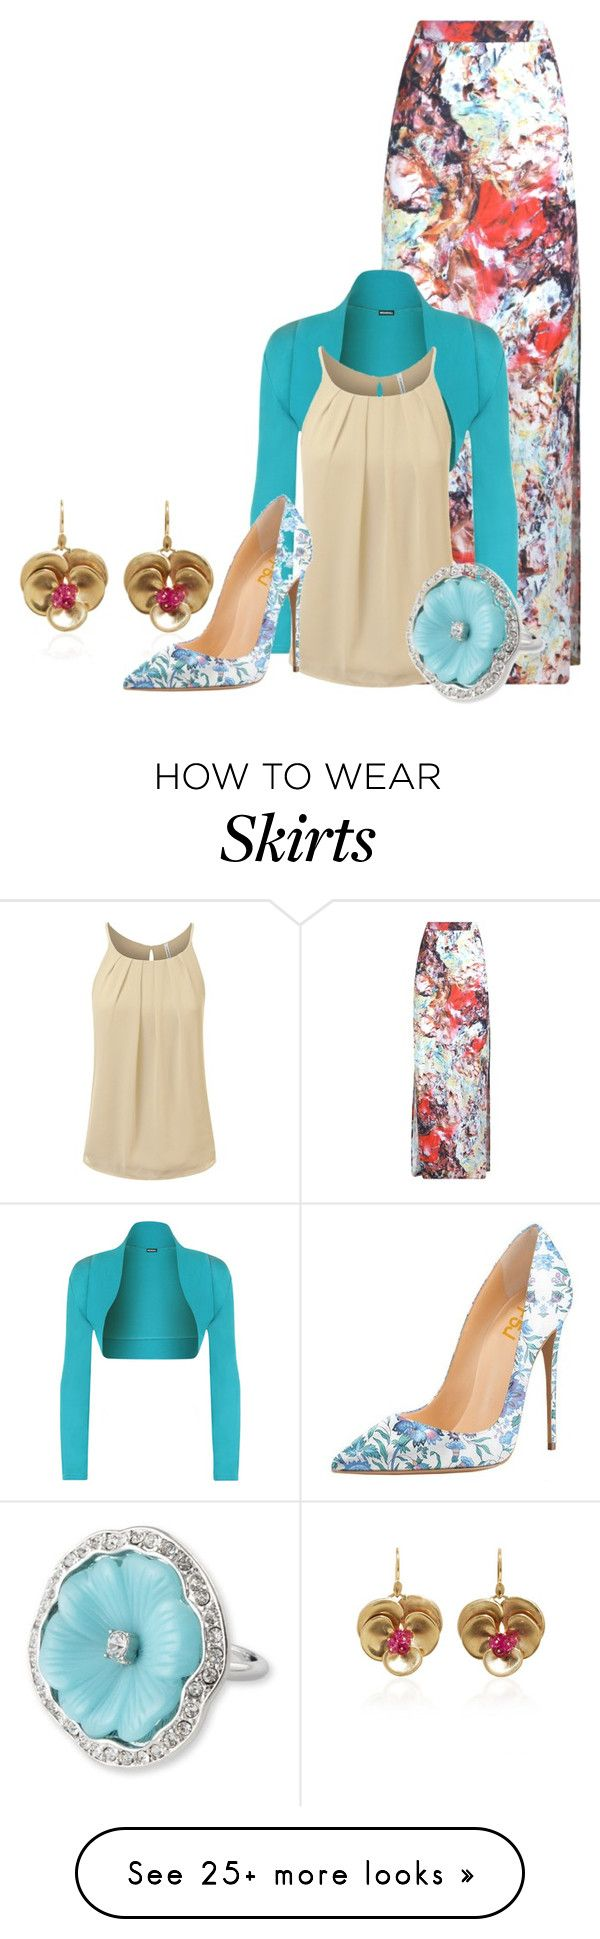 """Maxi"" by dprice15 on Polyvore featuring WearAll and Kenneth Jay Lane"